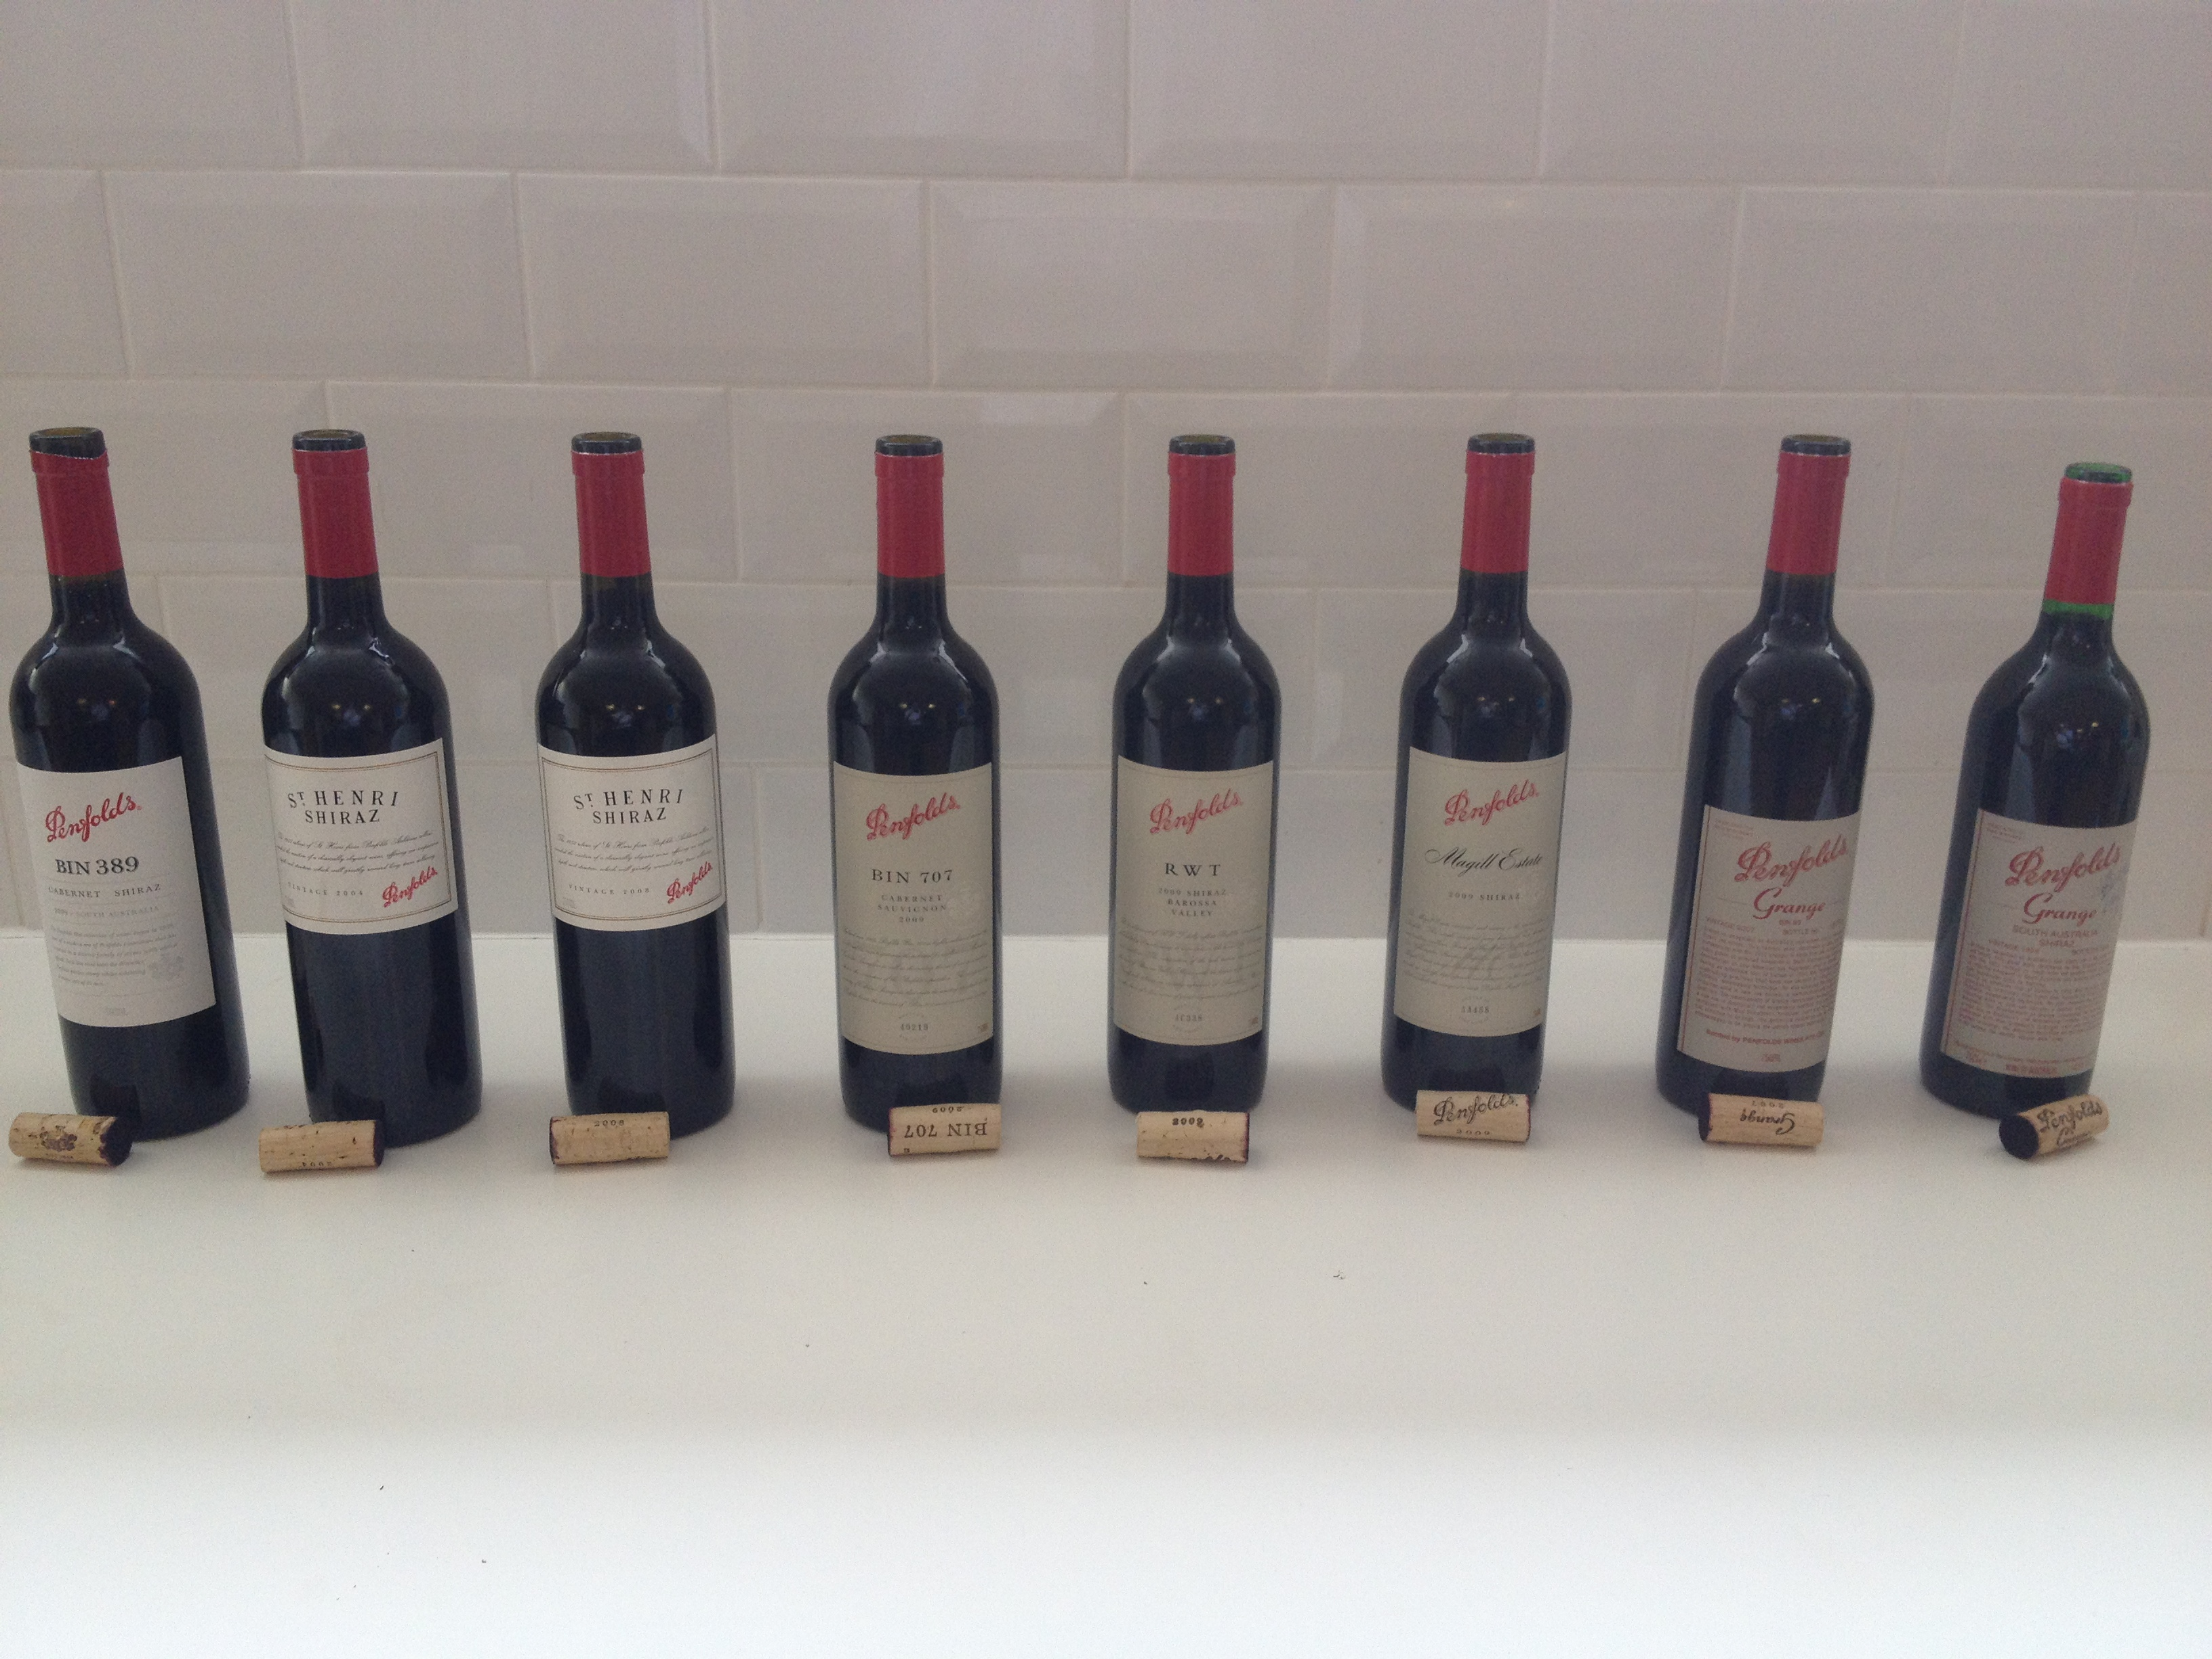 The Penfolds reds ready to taste